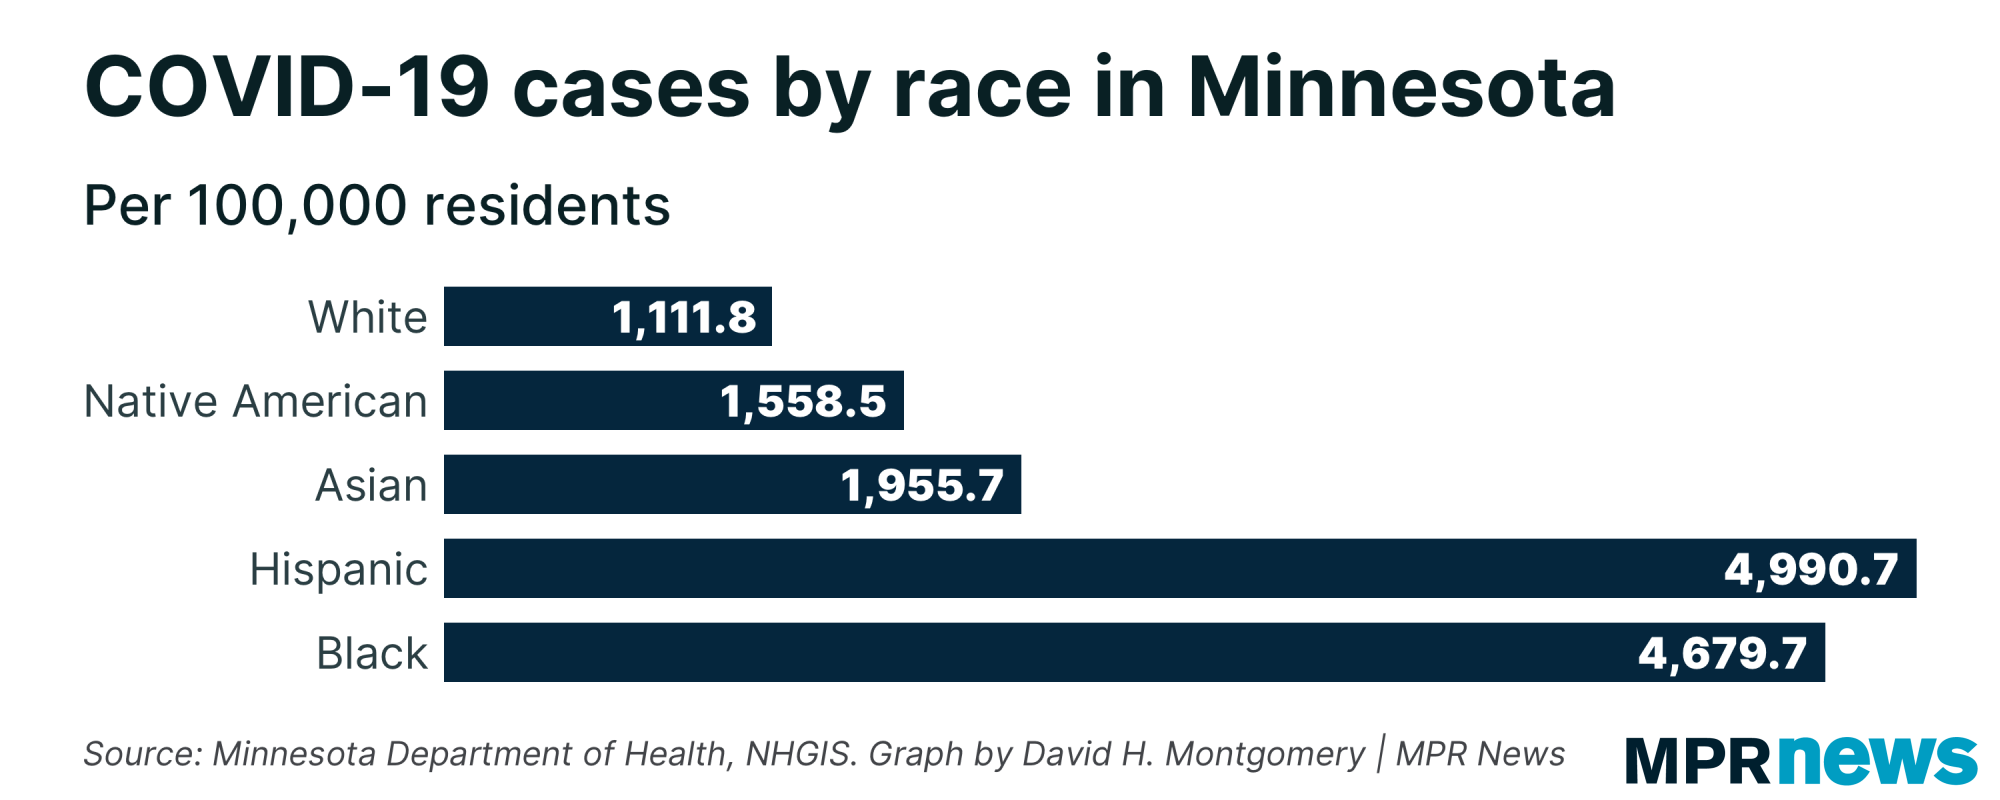 COVID-19 cases per capita among Minnesota residents by race